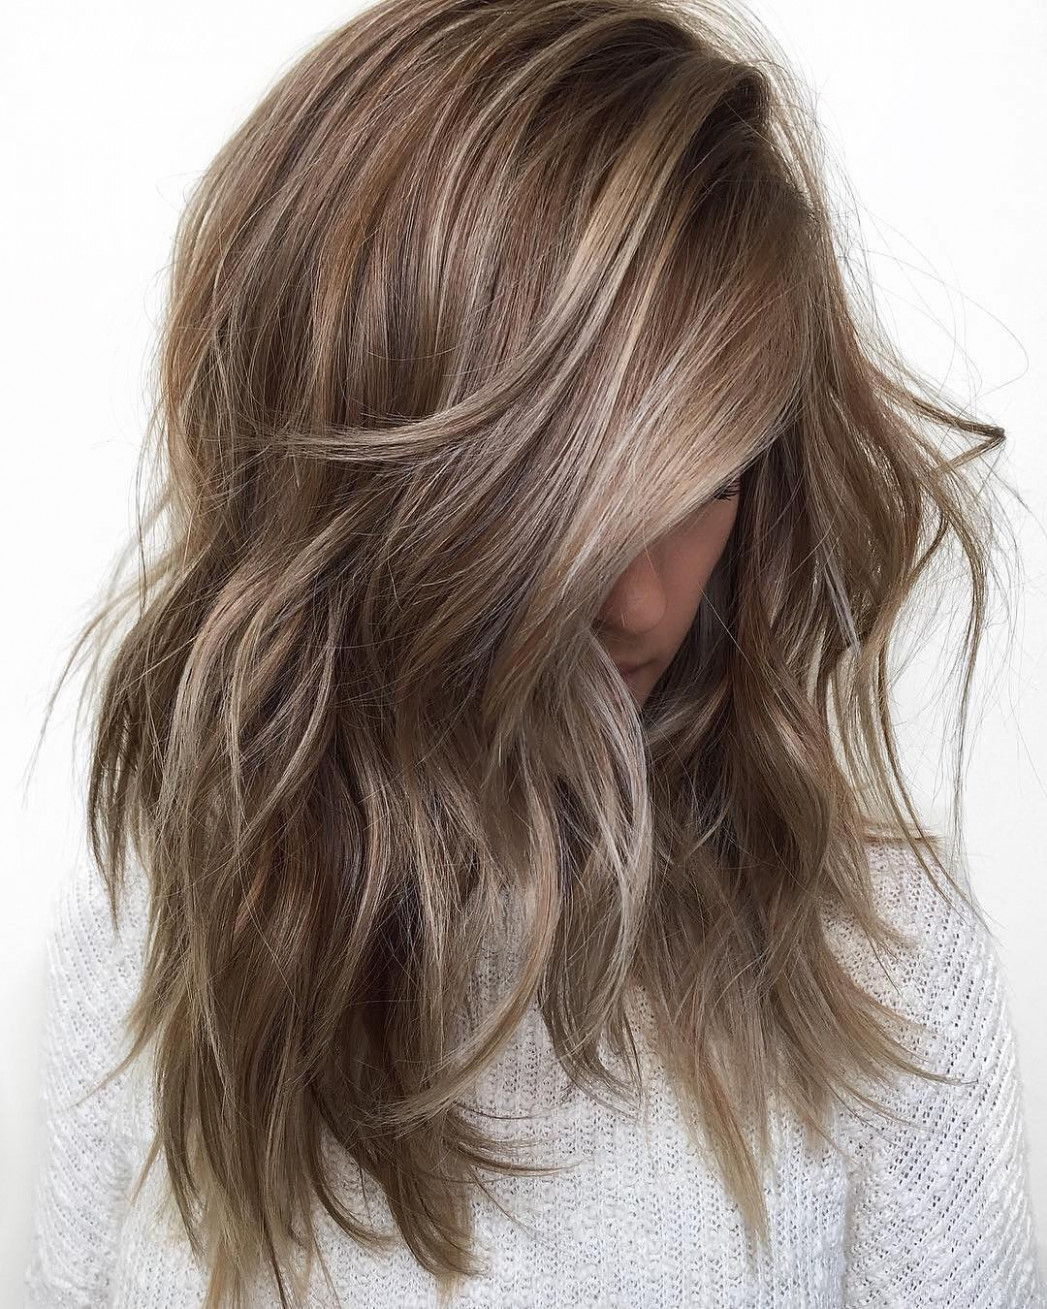 Balayage ombre hair styles for shoulder length hair nicestyles mid length ombre